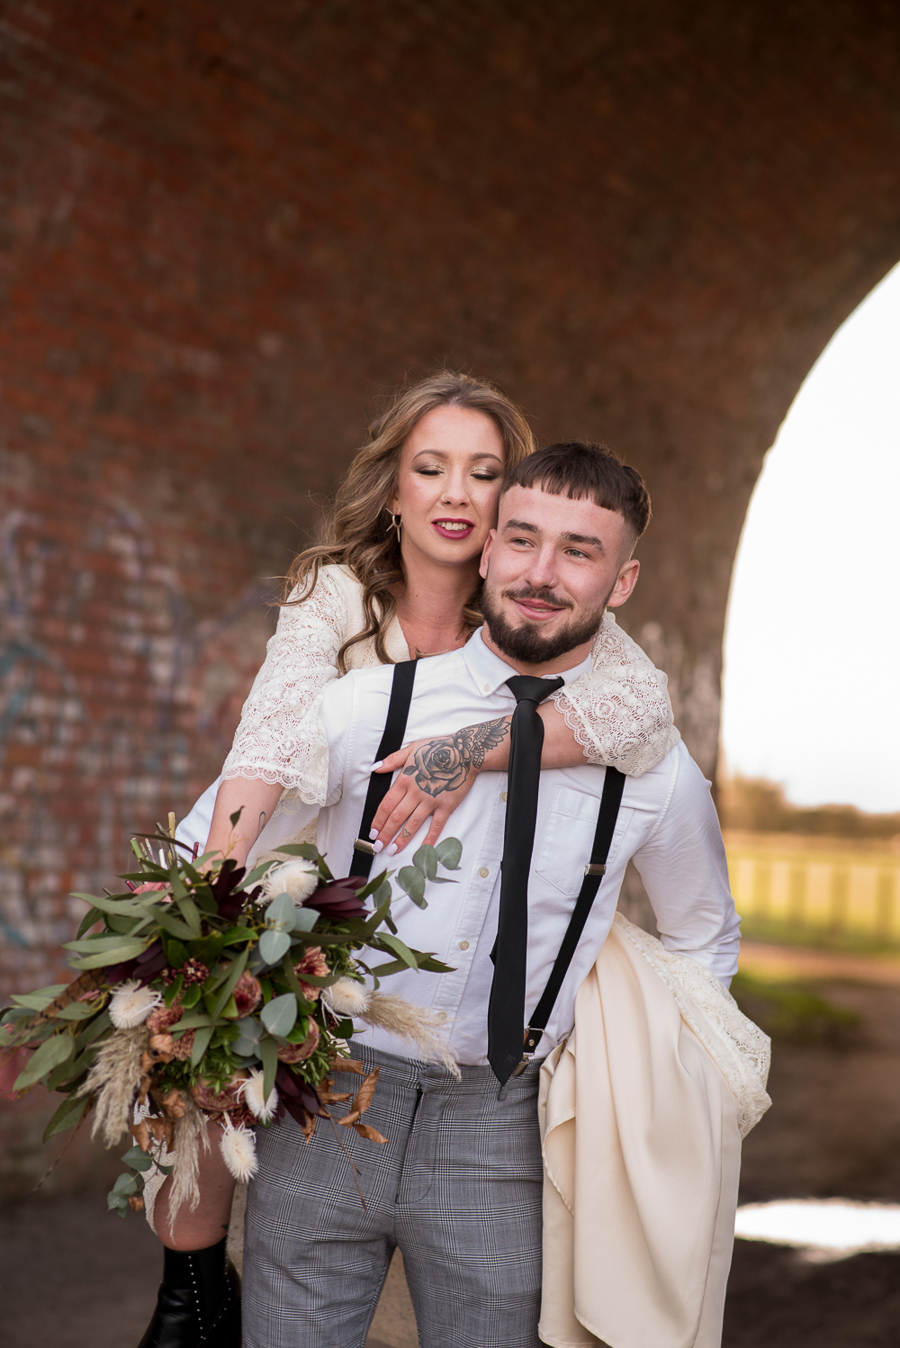 See you at Sunset - a warm autumnal wedding photoshoot with Nicola Belson Photography (43)